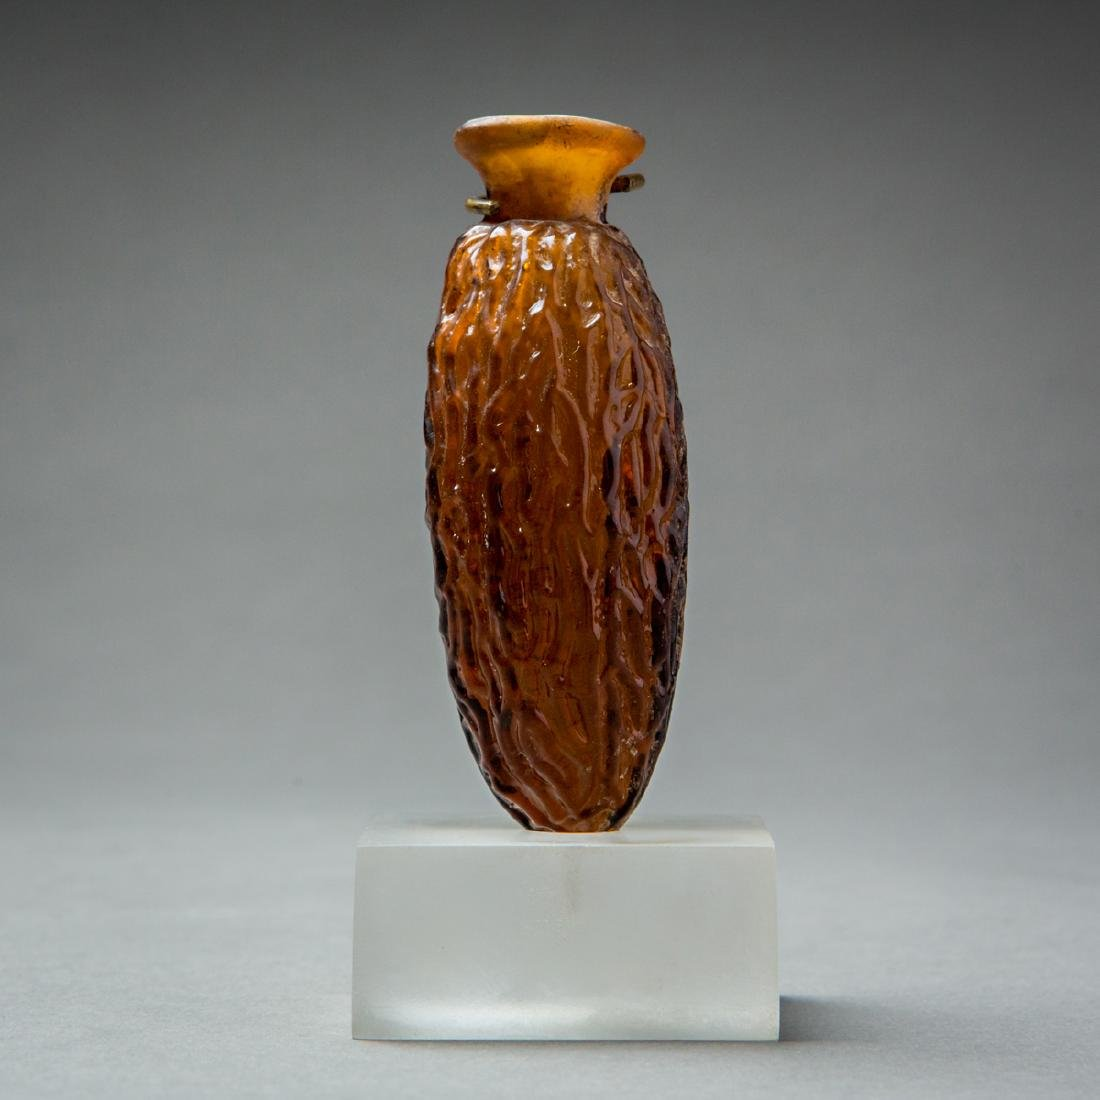 Roman Glass Date-Shaped Flask